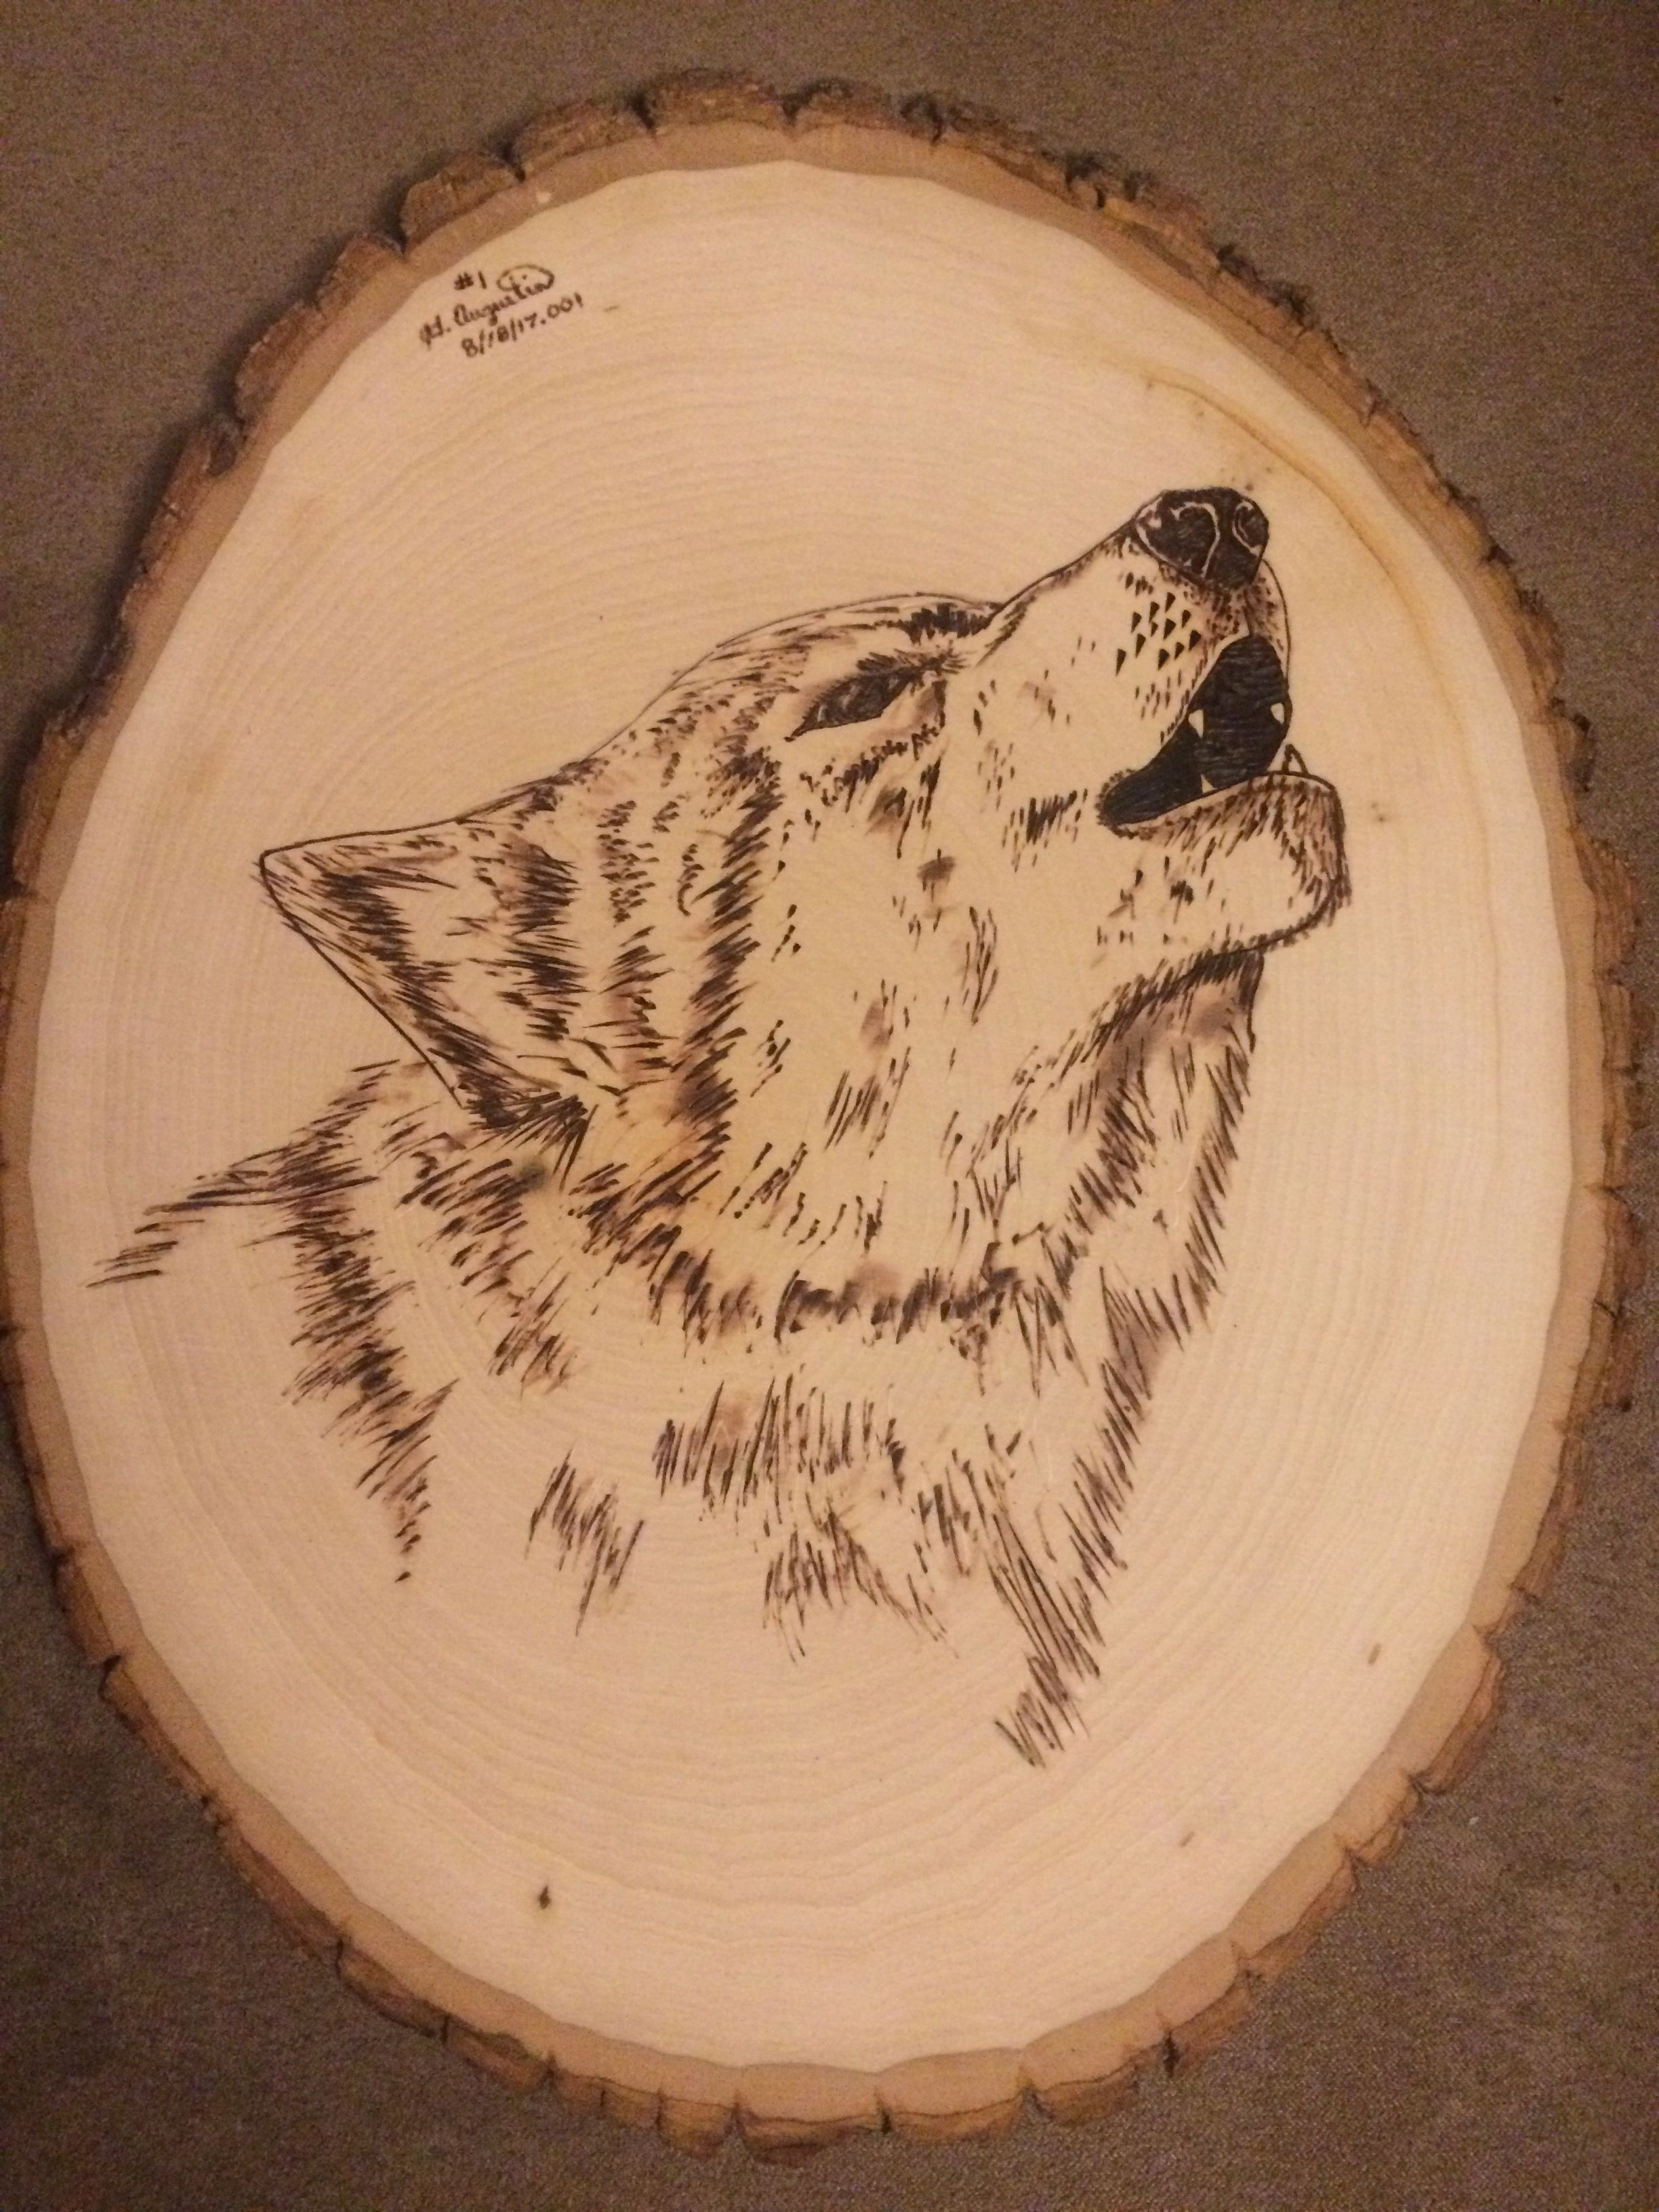 Wolf Wood Burn Done By Hand Wood Burning Stencils Wood Burning Patterns Stencil Wood Burning Patterns